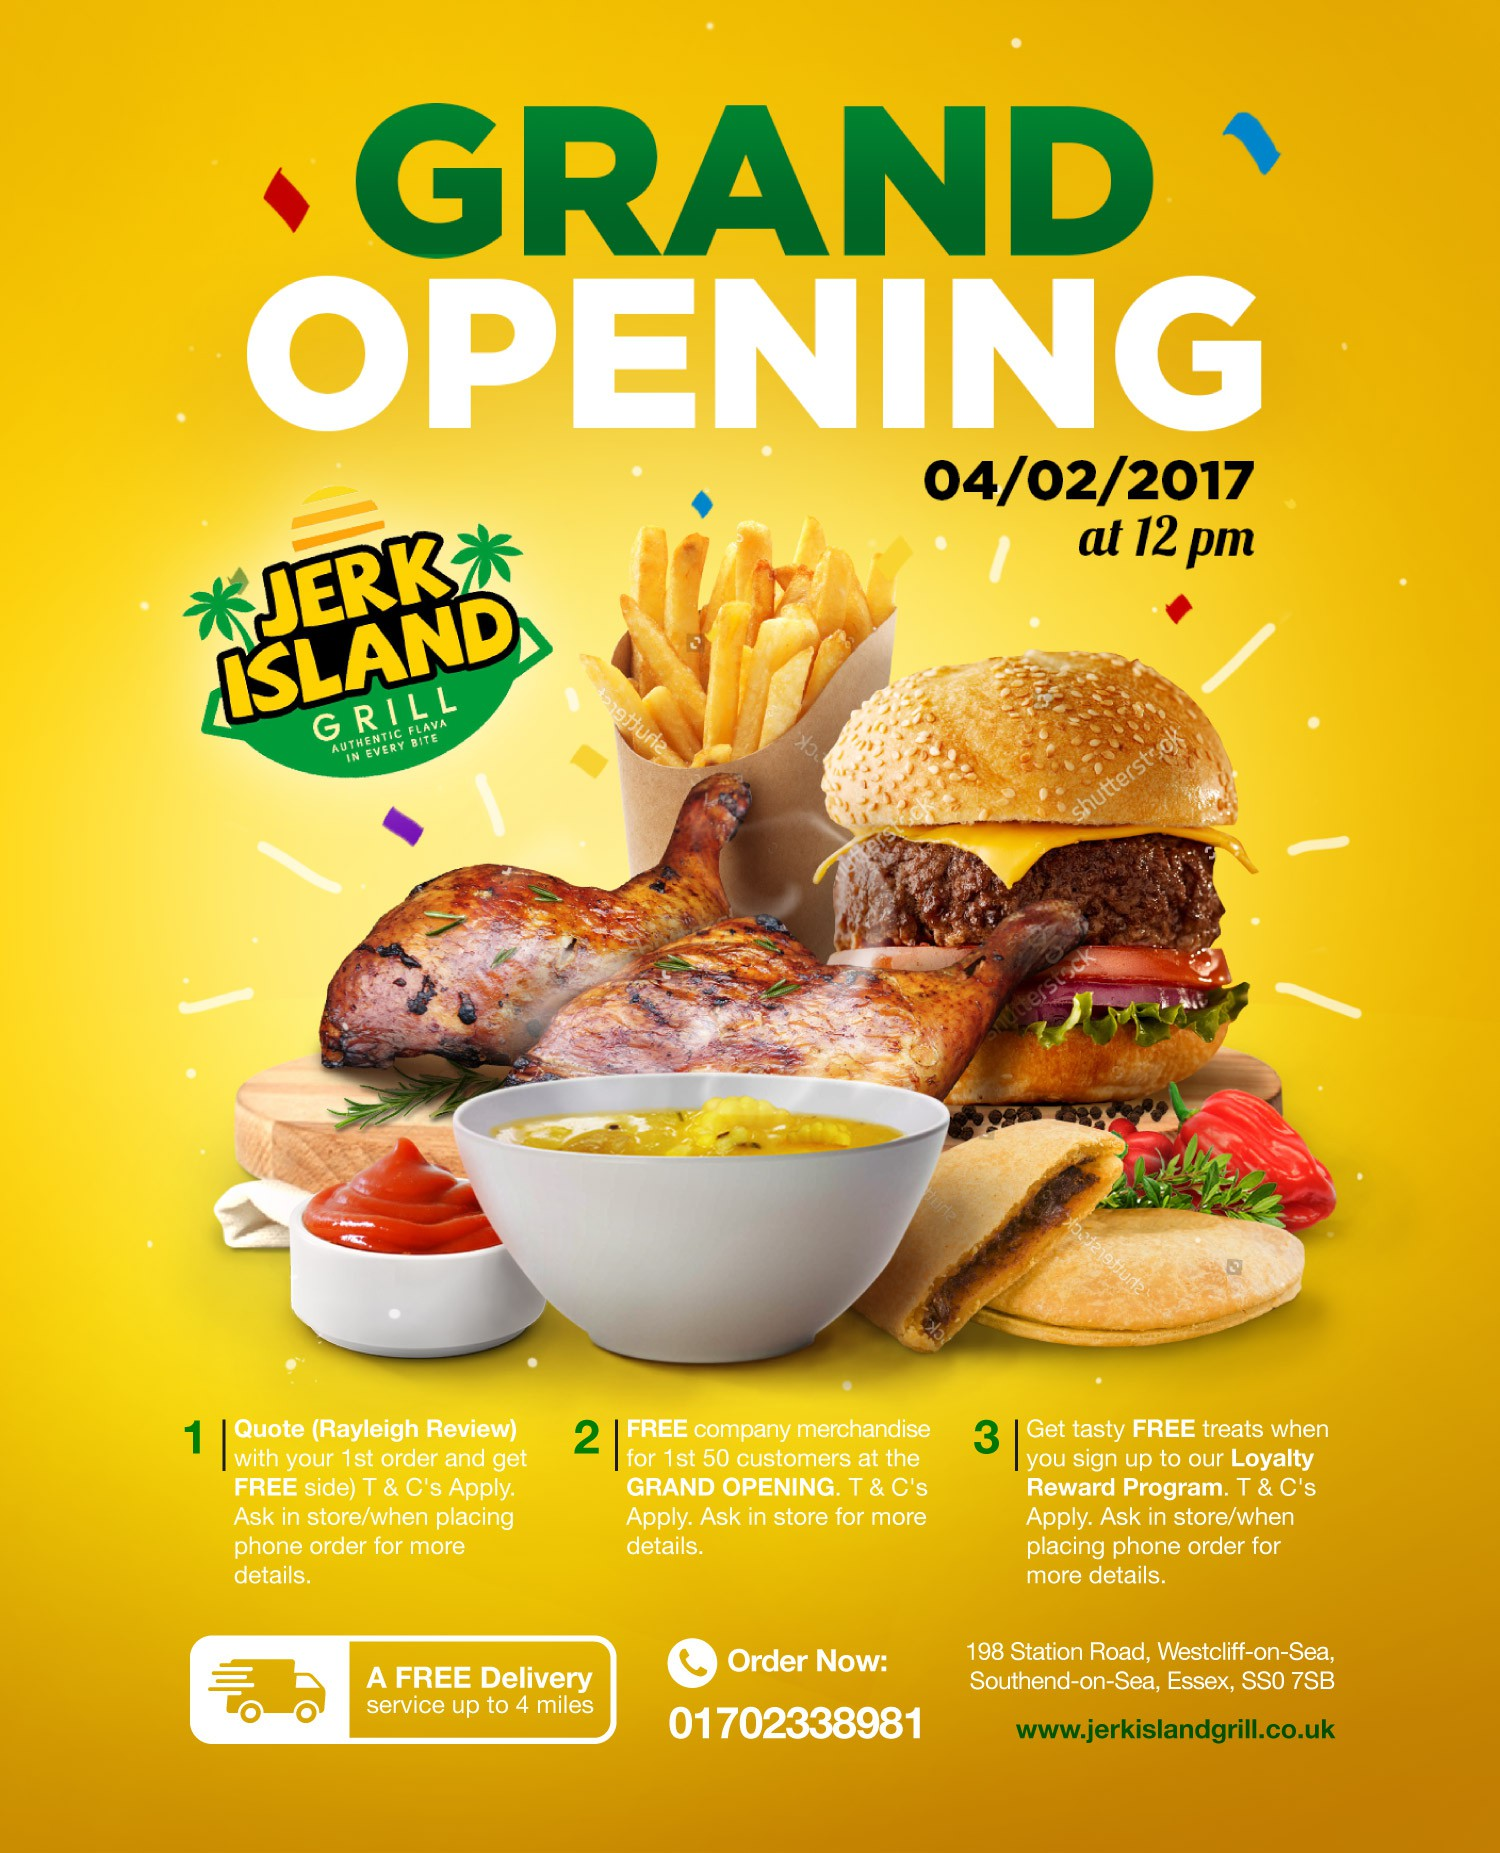 CREATE EYE-CATCHING, COLOURFUL PRINT AD FOR JERK ISLAND GRILL